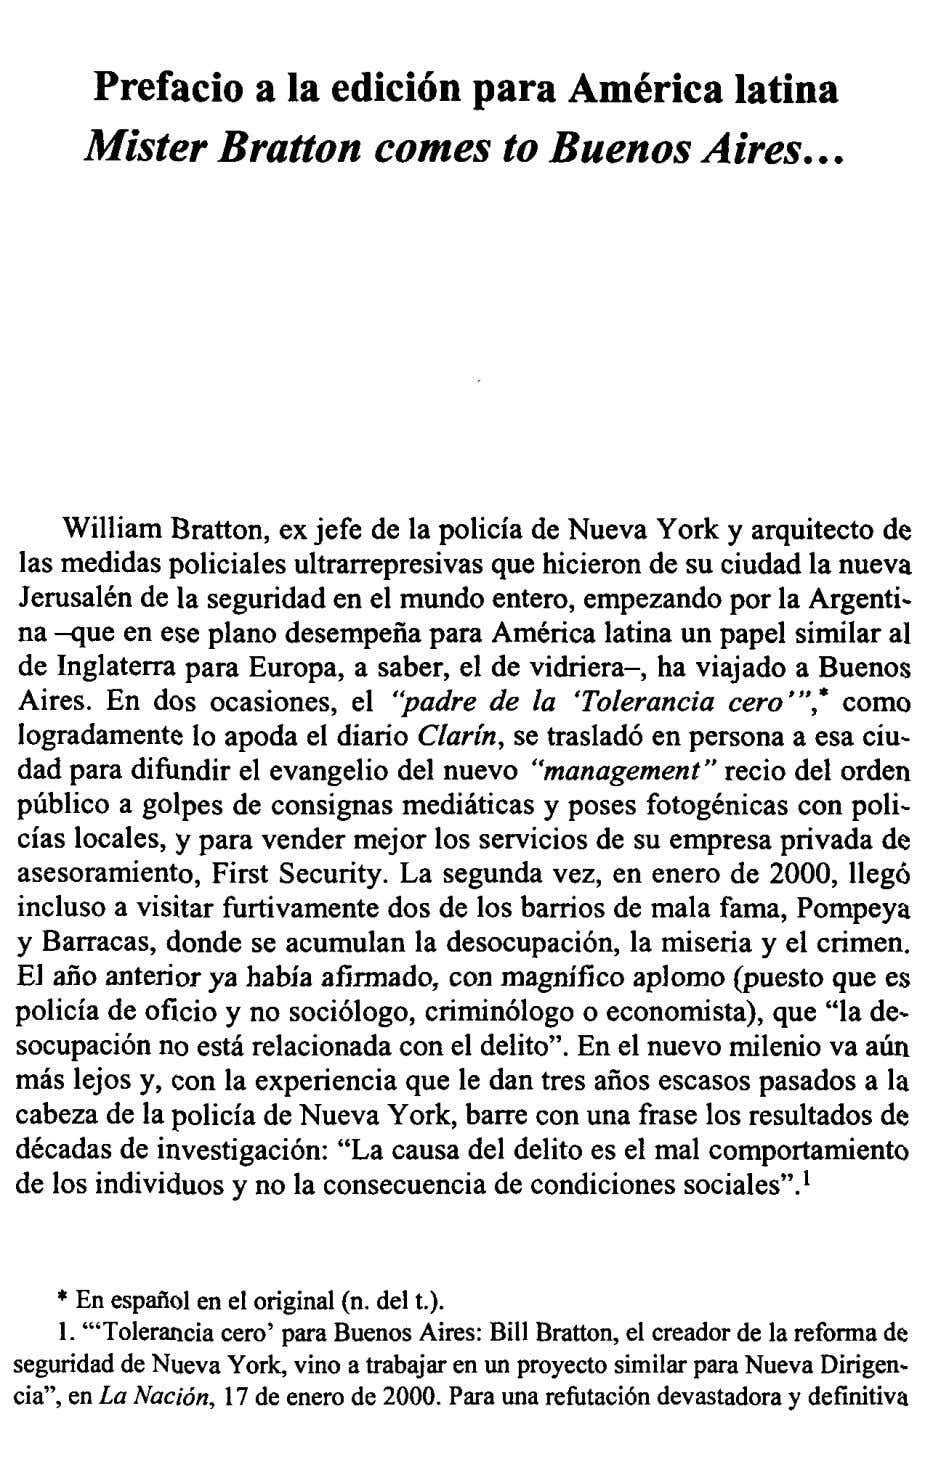 Prefacio a la edición para América latina Mister Bratton comes to Buenos Aires William Bratton,